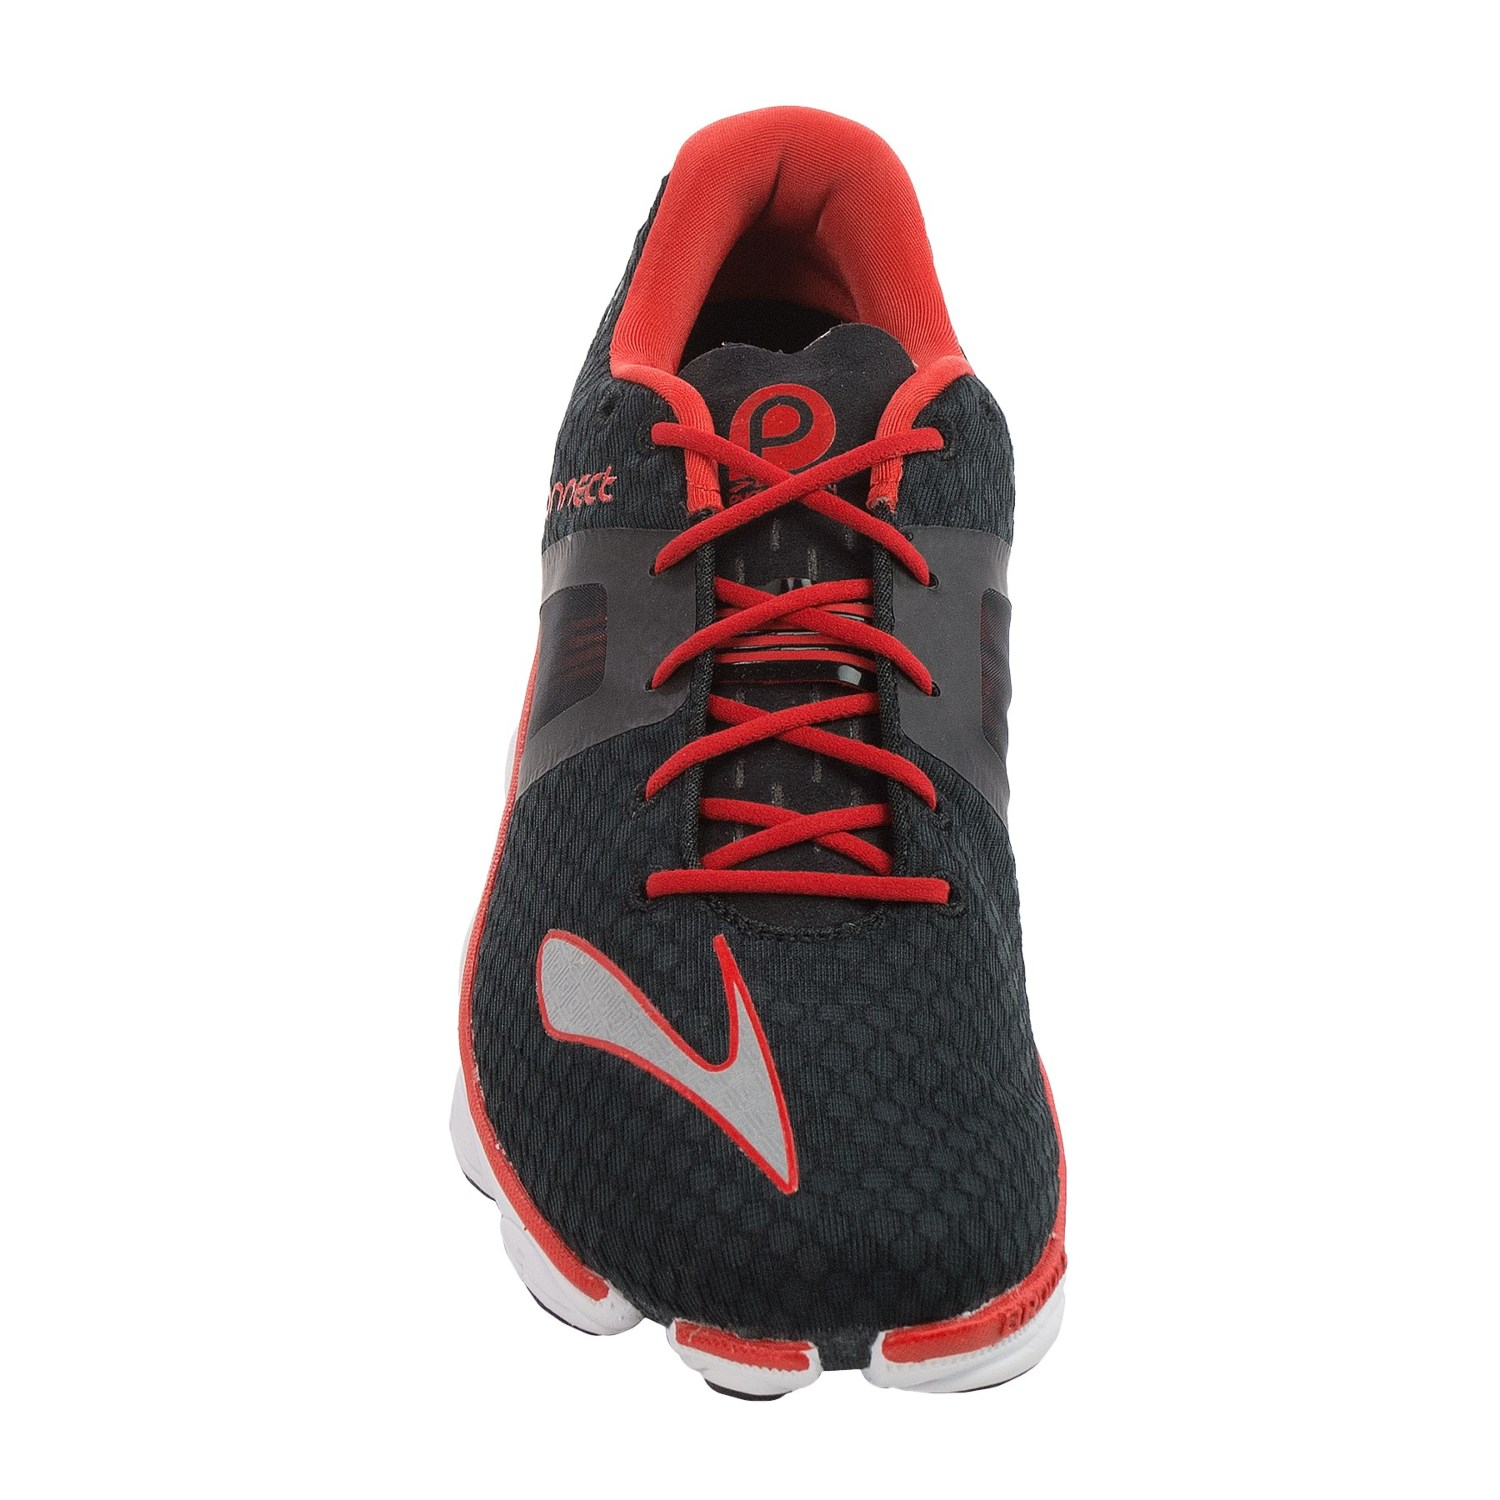 Pureconnect  Road Running Shoes Review